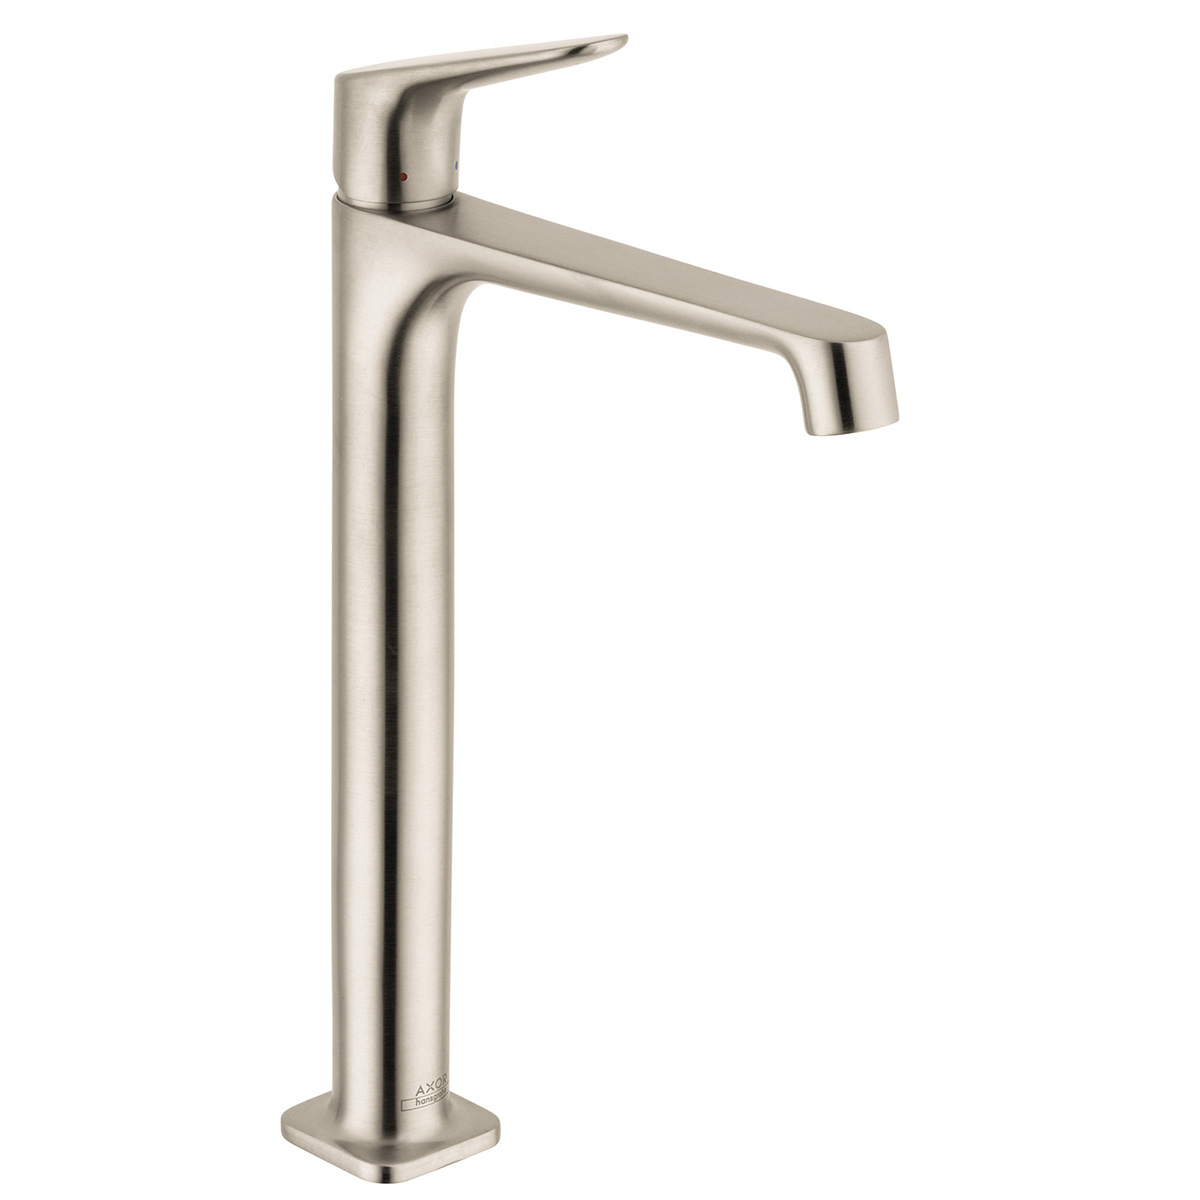 Bath4all Hansgrohe 34120821 Brushed Nickel Axor Citterio M